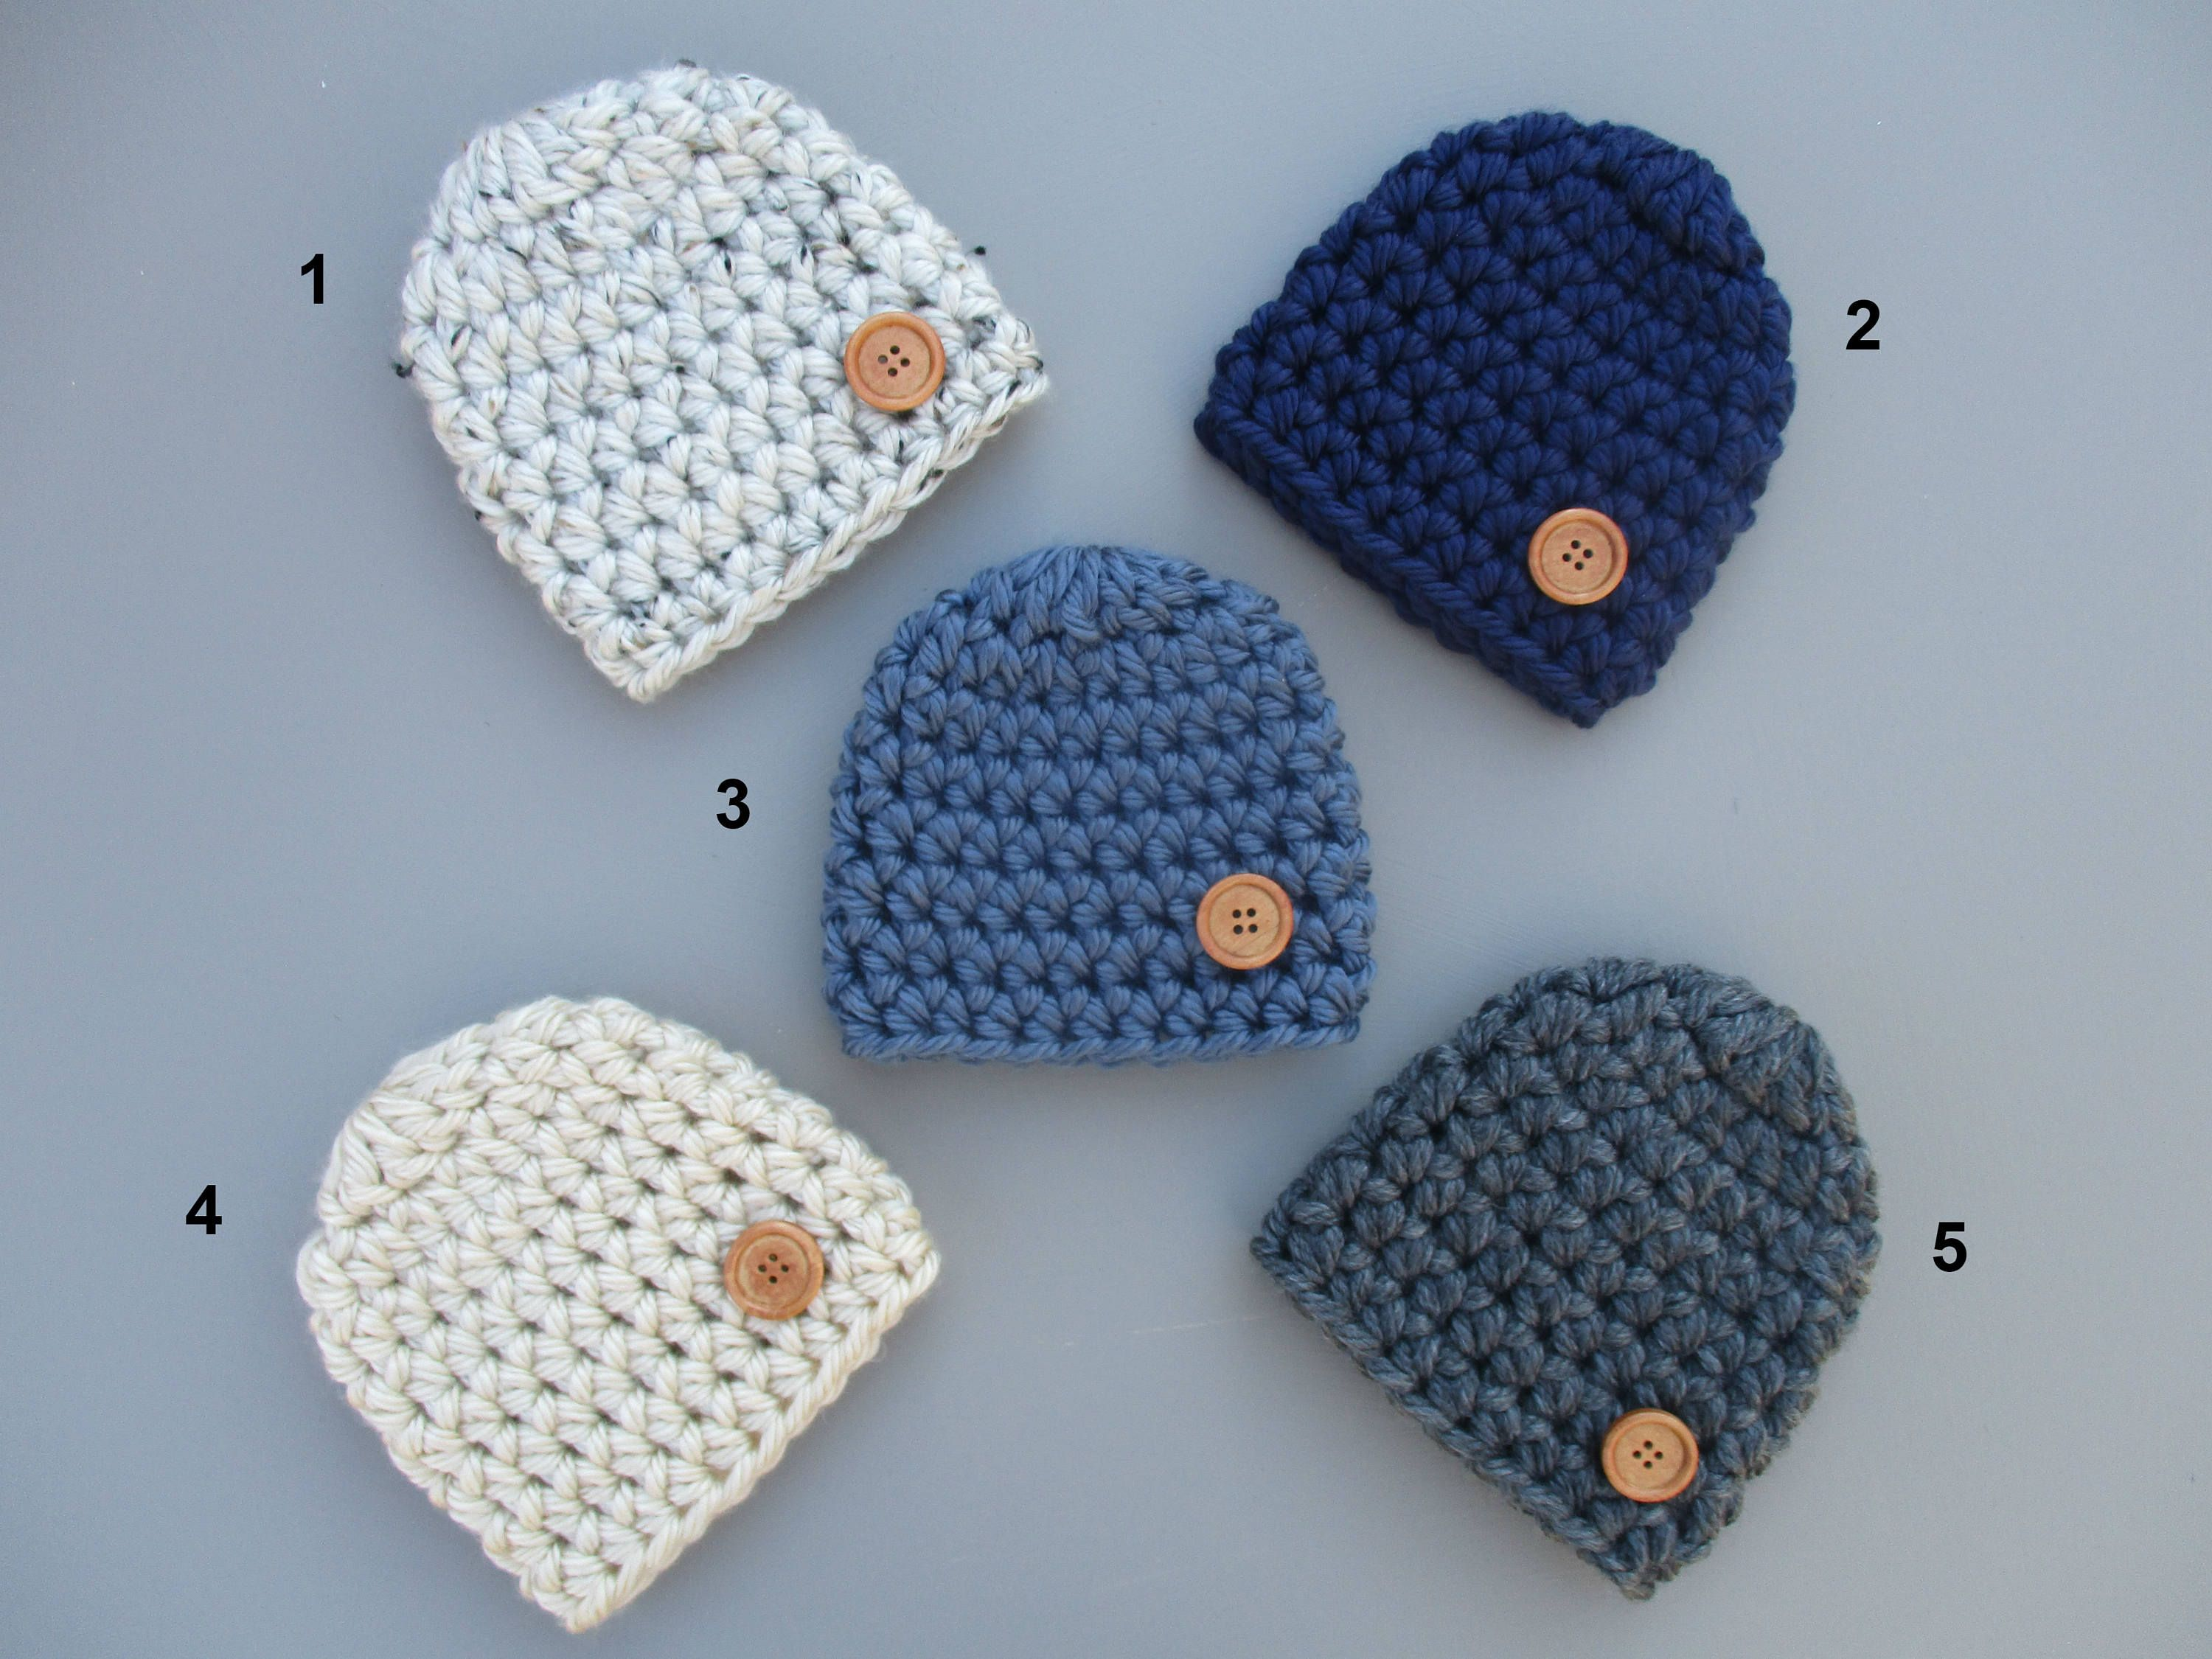 e66406095b9 tton Hat Newborn Boy Hat Baby Beanie Crochet Baby Hat Boy Baby Hat https